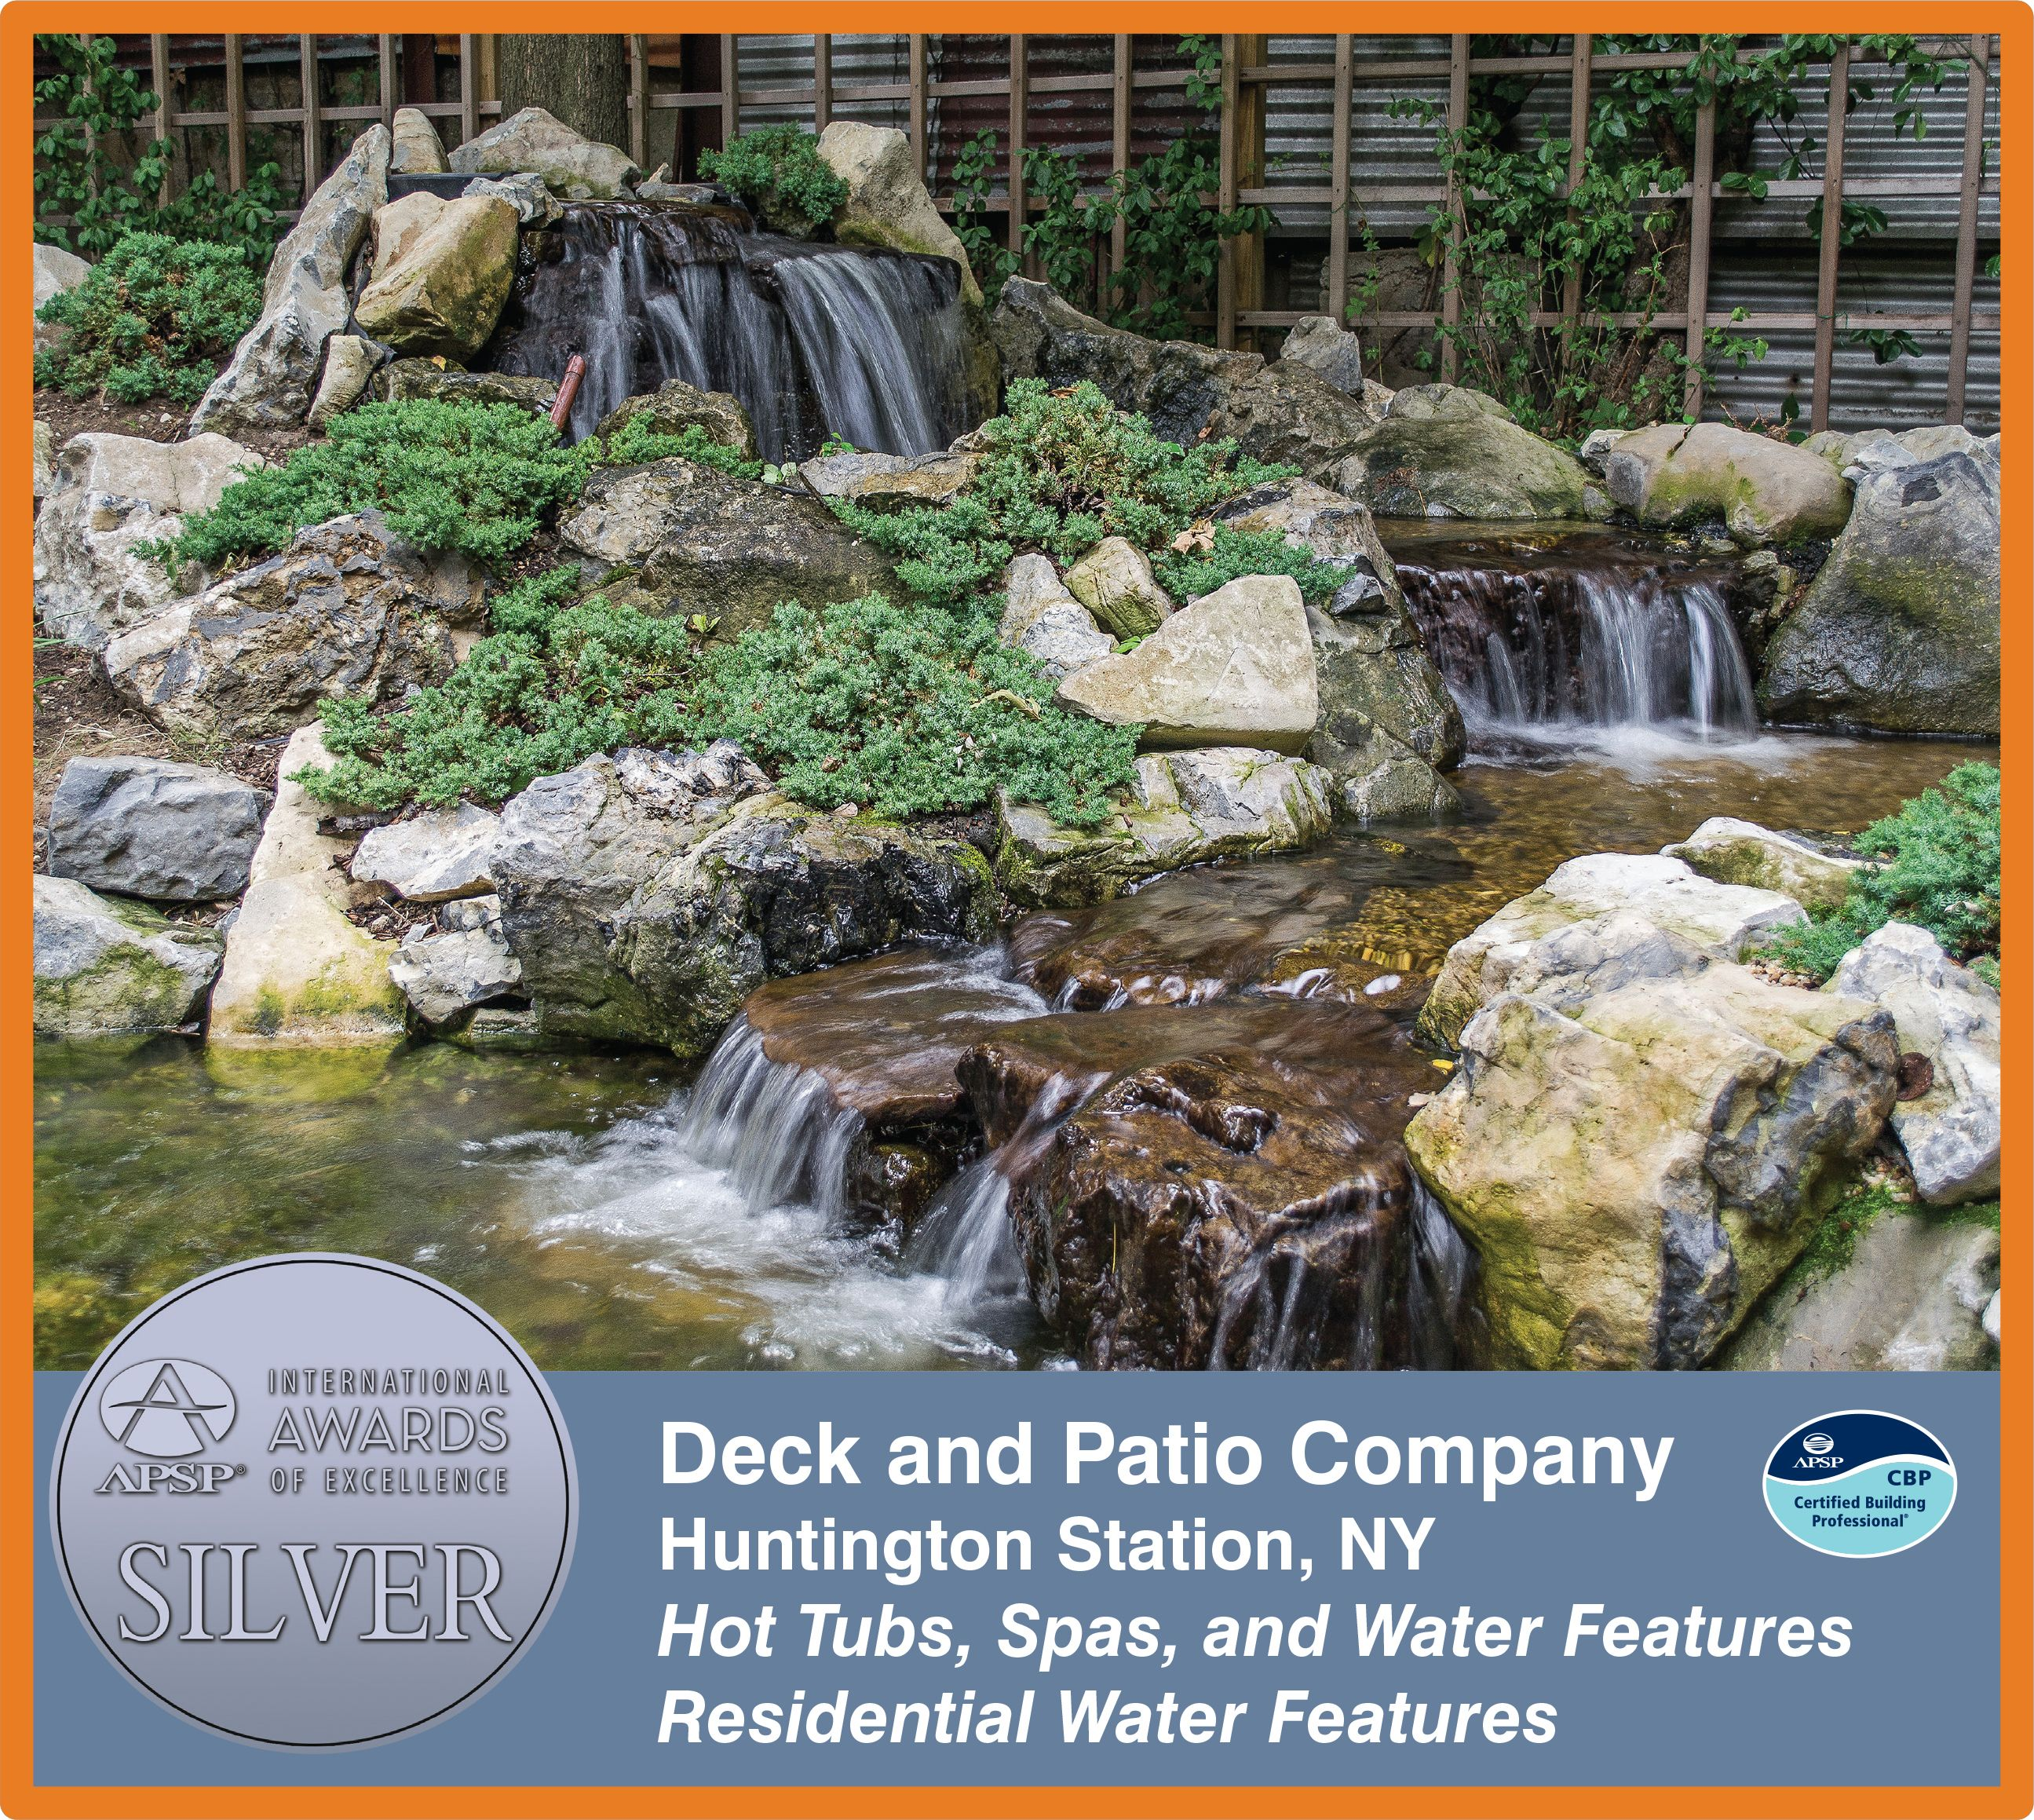 Deck and Patio's APSP Silver Award (Brooklyn, NY):